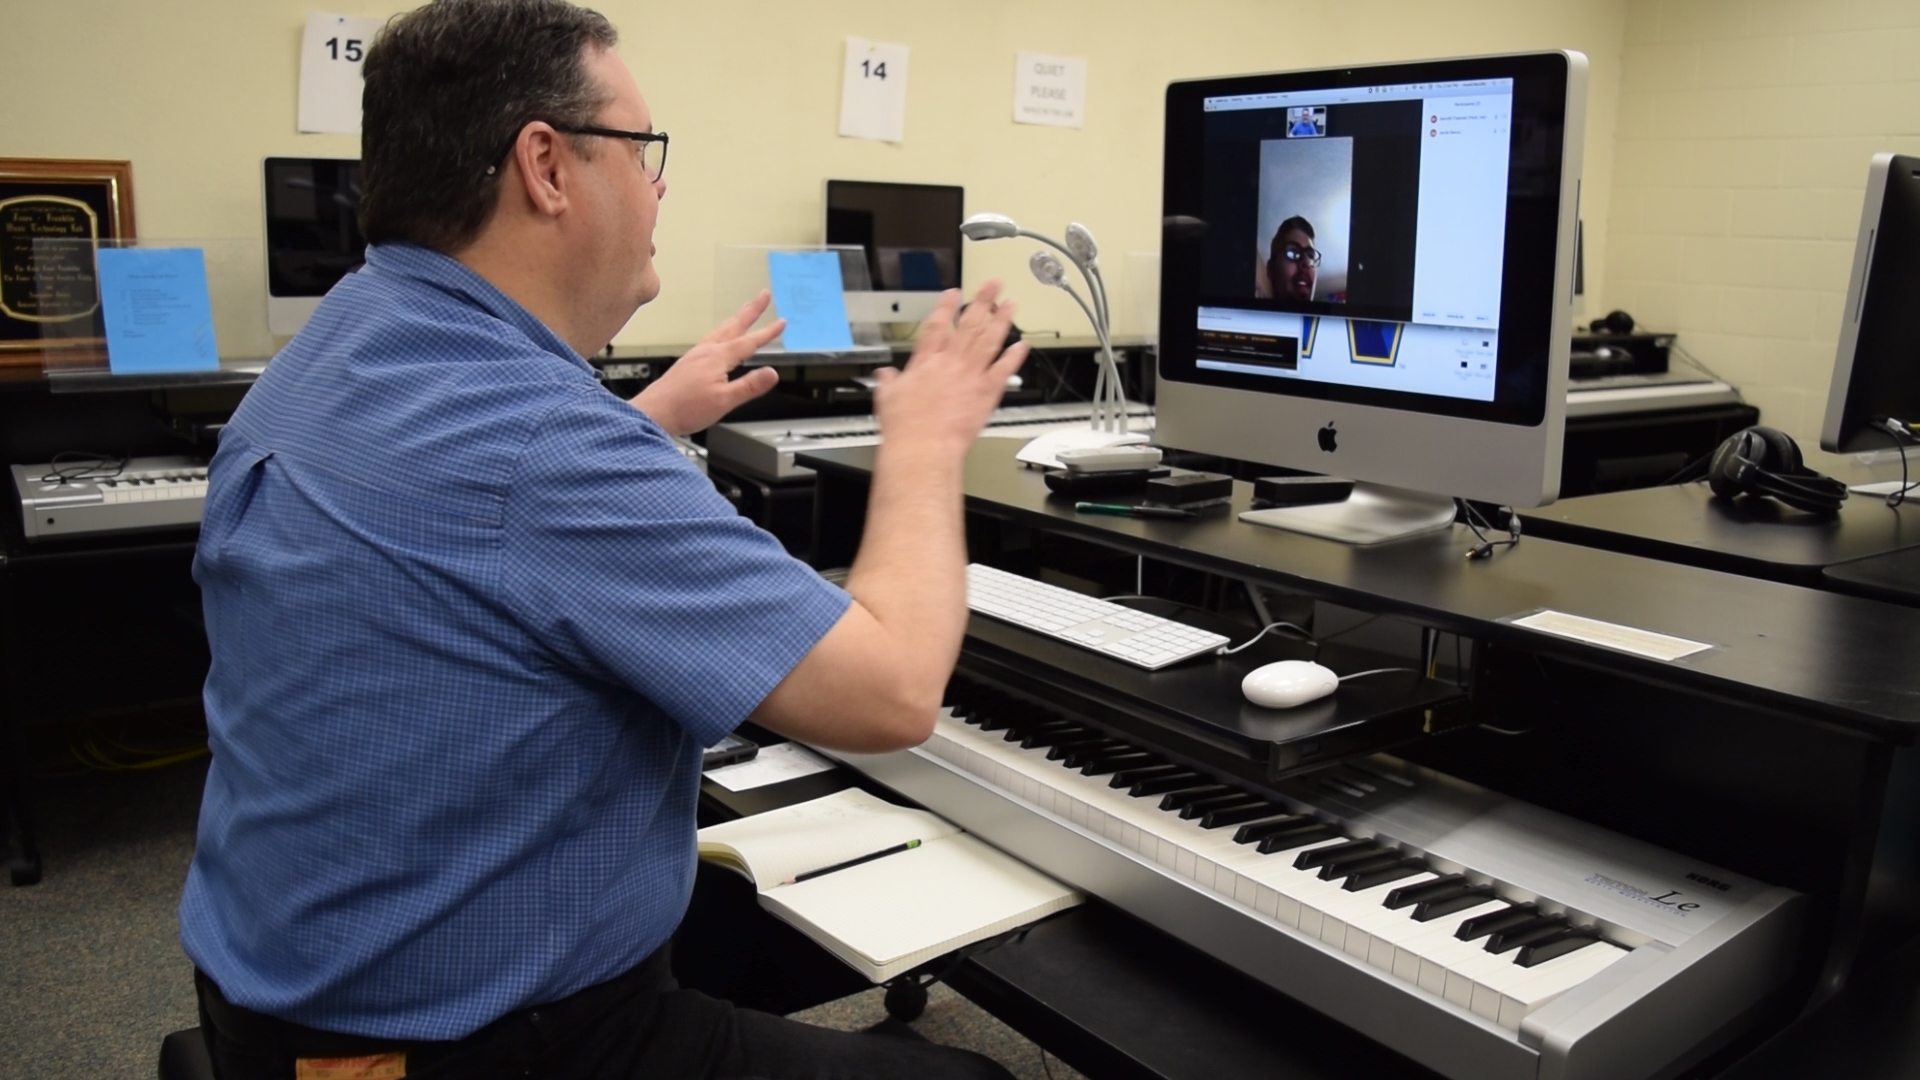 man sitting at electronic piano talking to students through video chat